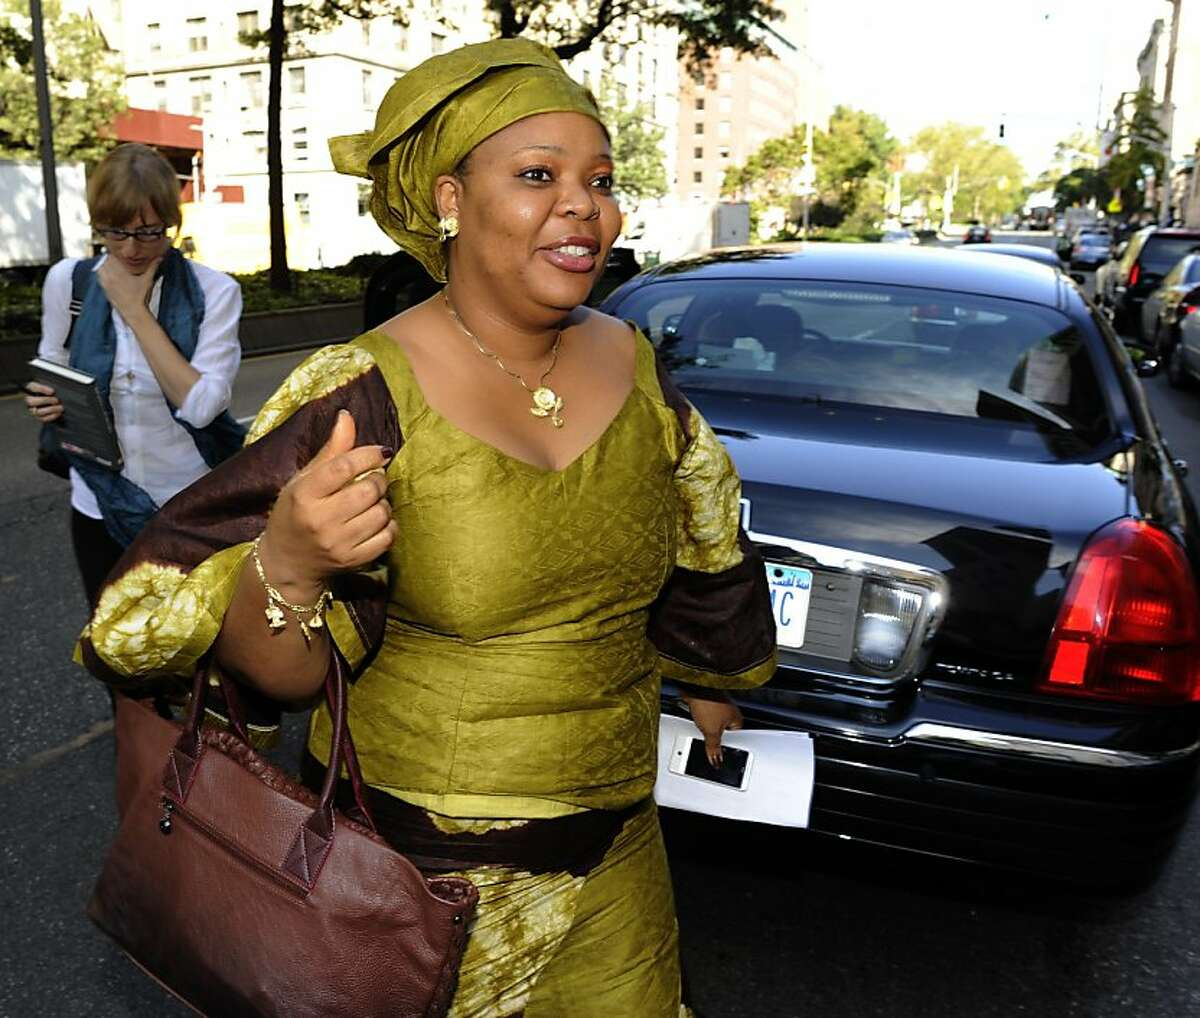 Liberian Leymah Gbowee arrives at Columbia University in New York to attend the Columbia Business School Social Enterprise Conference October 7, 2011 after it was announced she won the 2011 Nobel Peace Prize along with Liberian President Ellen Johnson Sirleaf, and Tawakul Karman of Yemen. AFP PHOTO / TIMOTHY A.CLARY (Photo credit should read TIMOTHY A. CLARY/AFP/Getty Images)